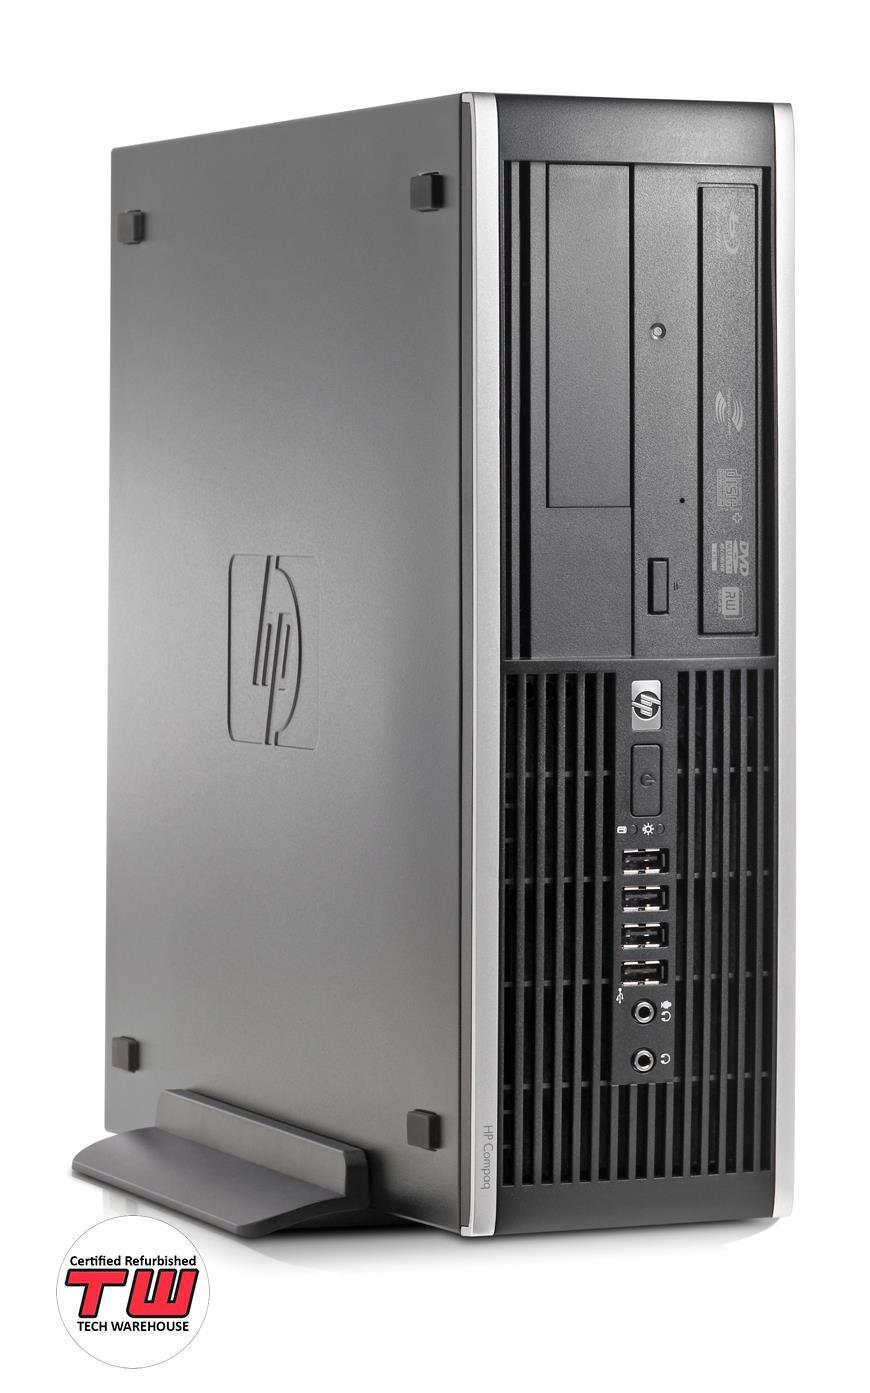 HP Elite 8000 (SFF) + Windows 7 Professional